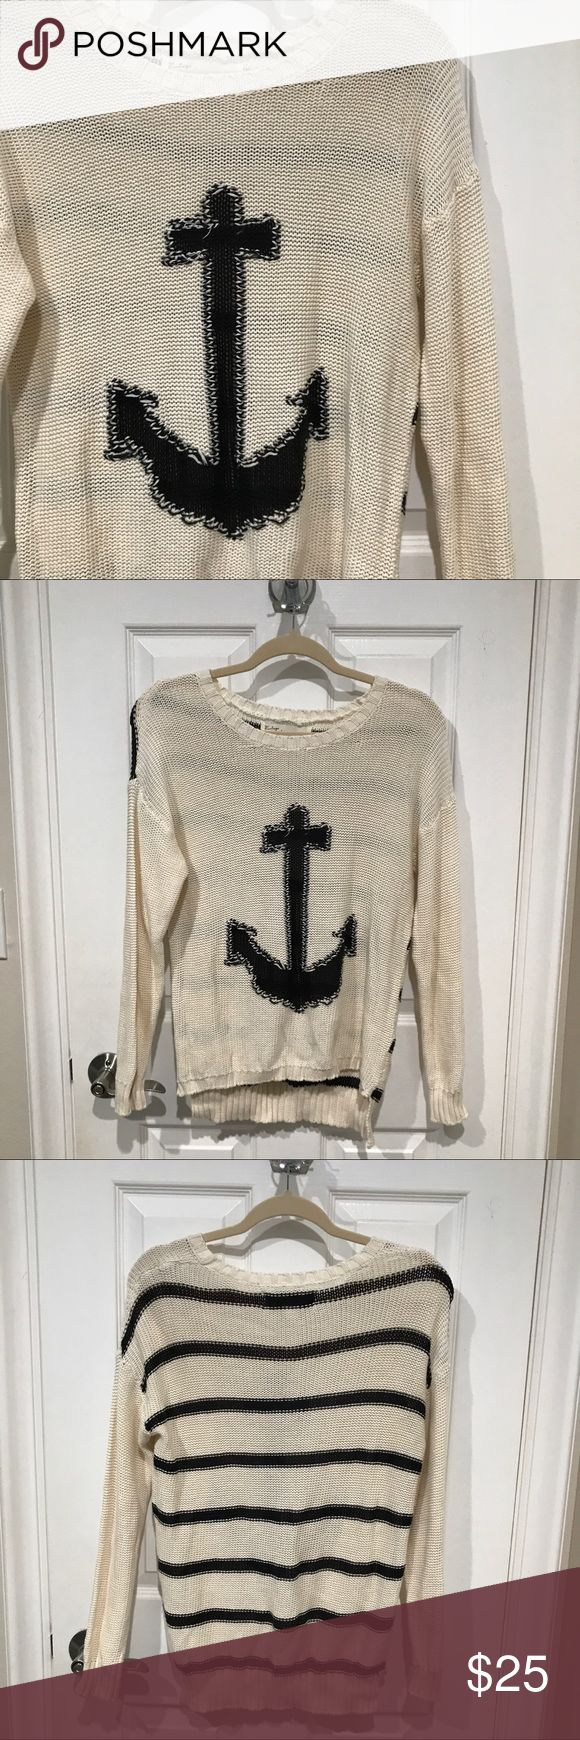 Anchor sweater Anchor sweater - anchor on the front and stripes on the back. Colors are cream and navy blue ❗️Never worn. Never worn. No trades. Open to reasonable offers ❗️brand is: VINTAGE HAVANA. Used Brandy for exposure! Brandy Melville Sweaters Crew & Scoop Necks